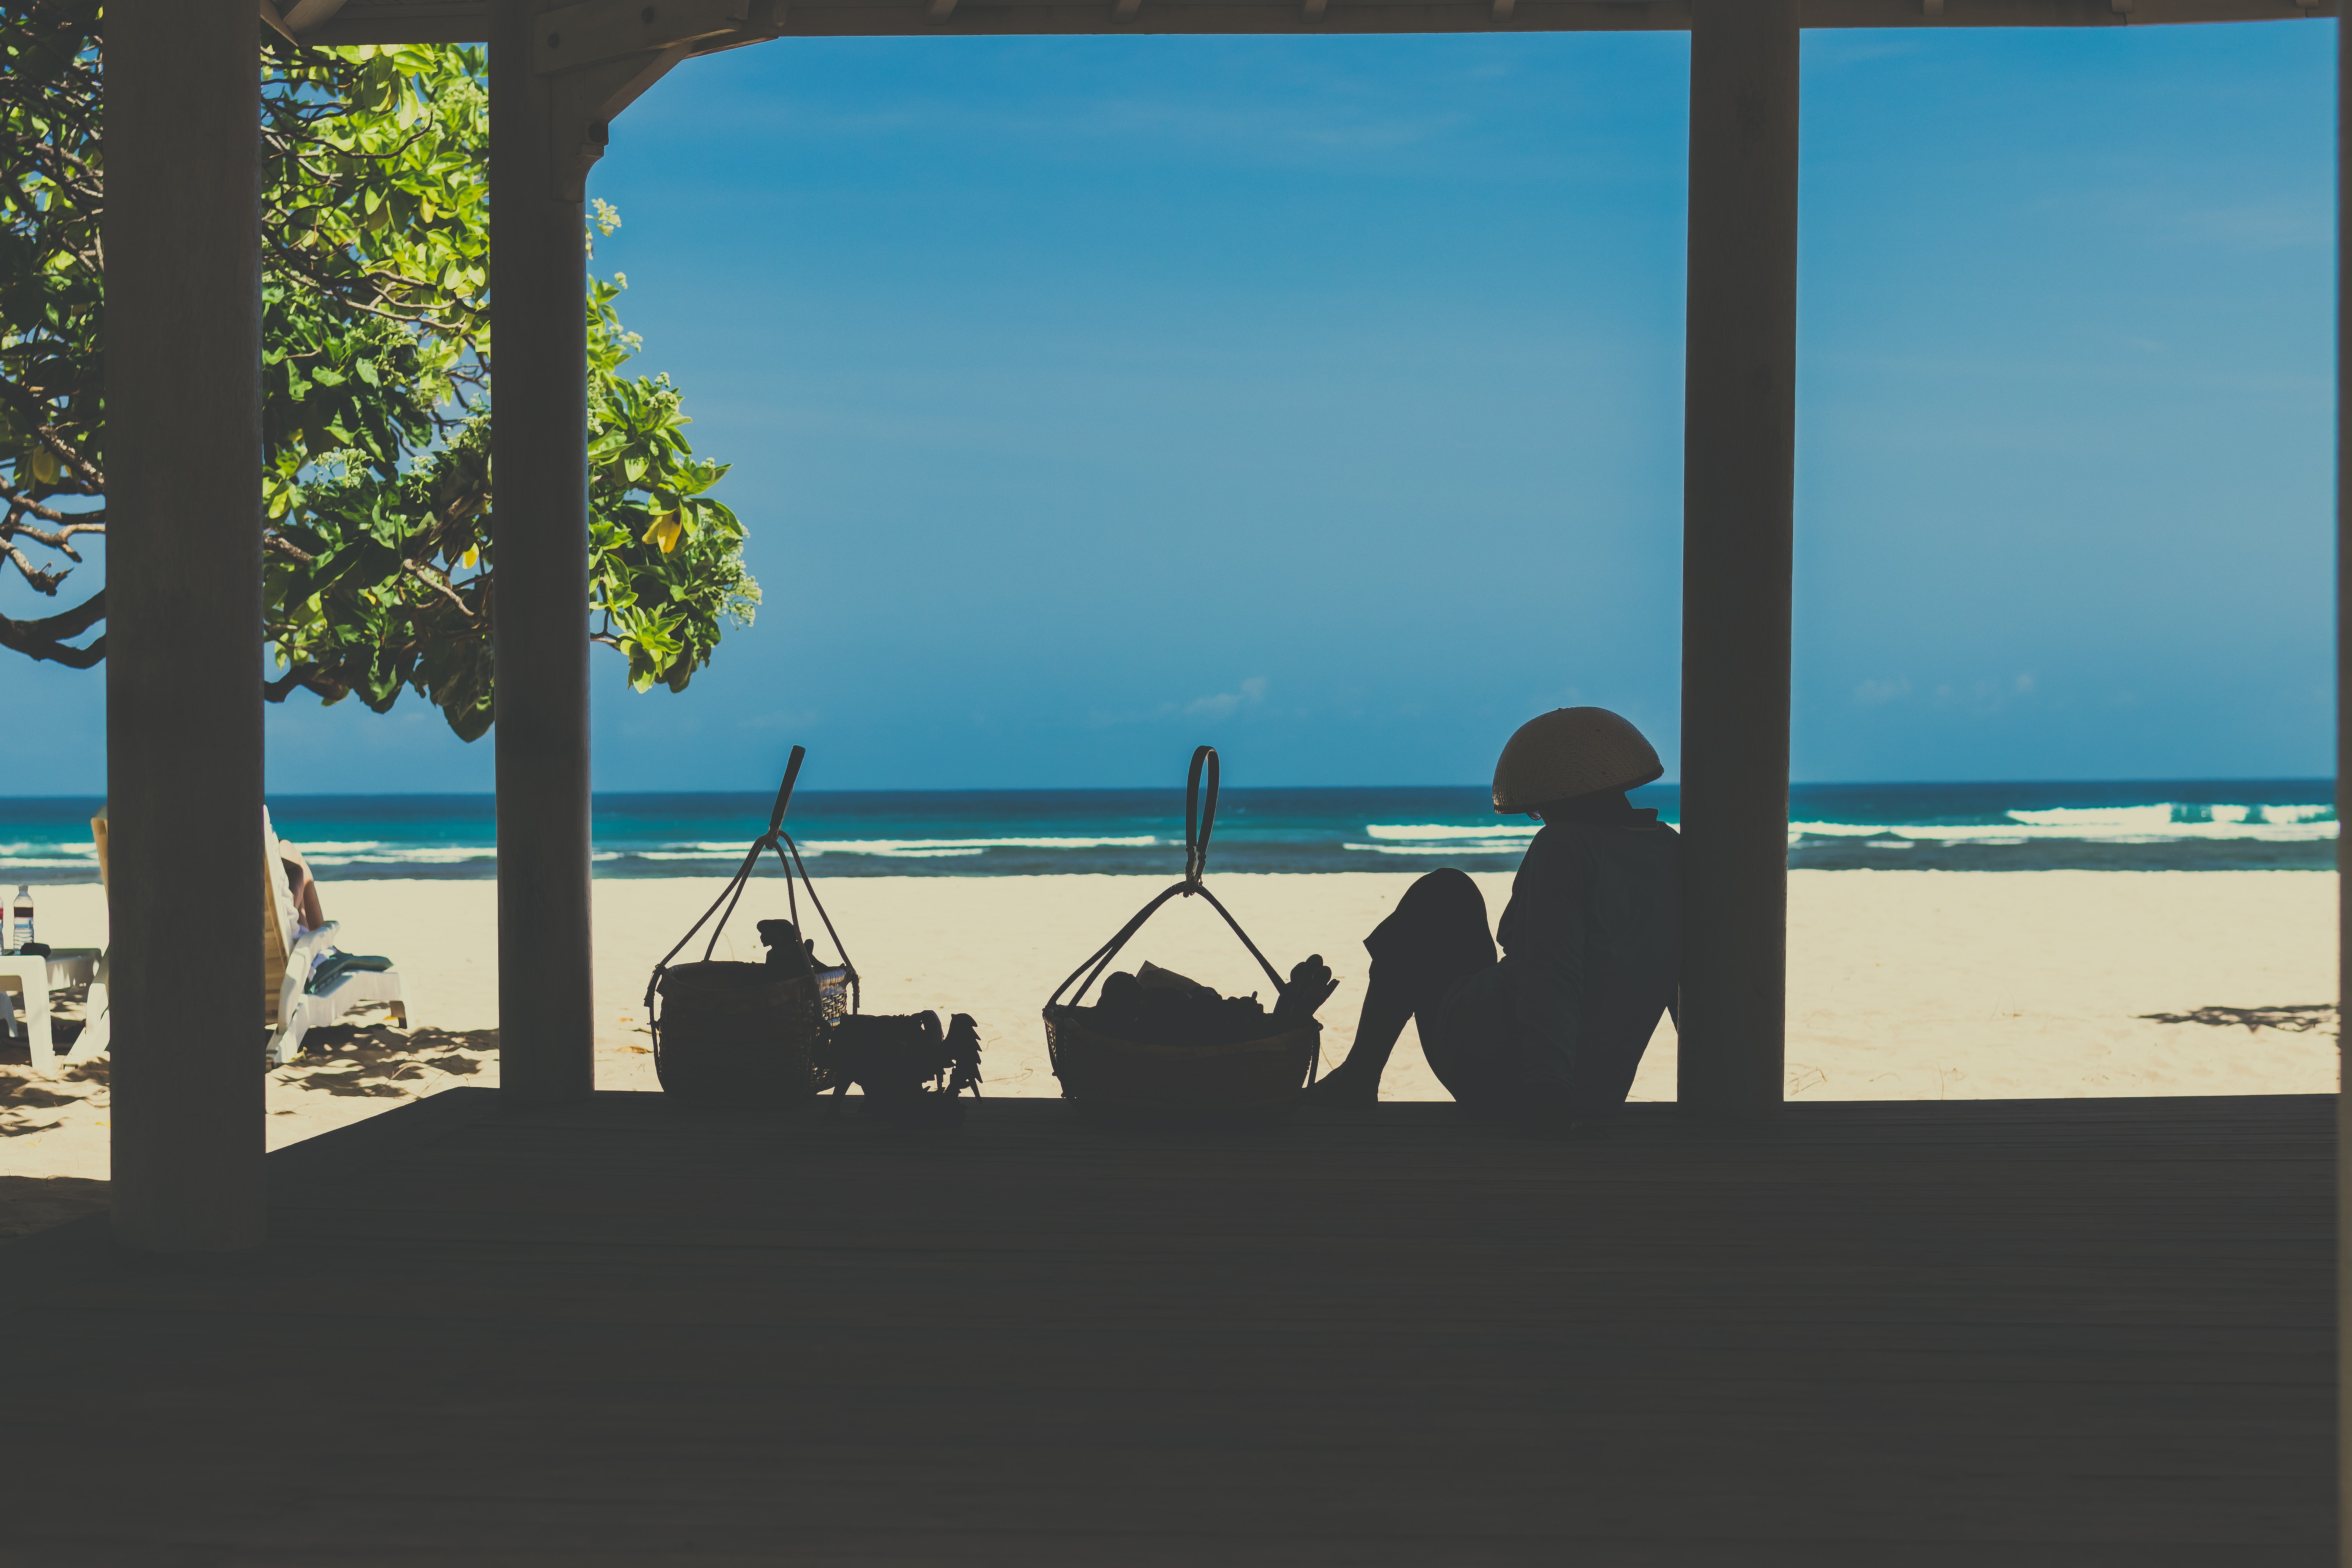 silhouette of person near basket while looking seashore during daytime